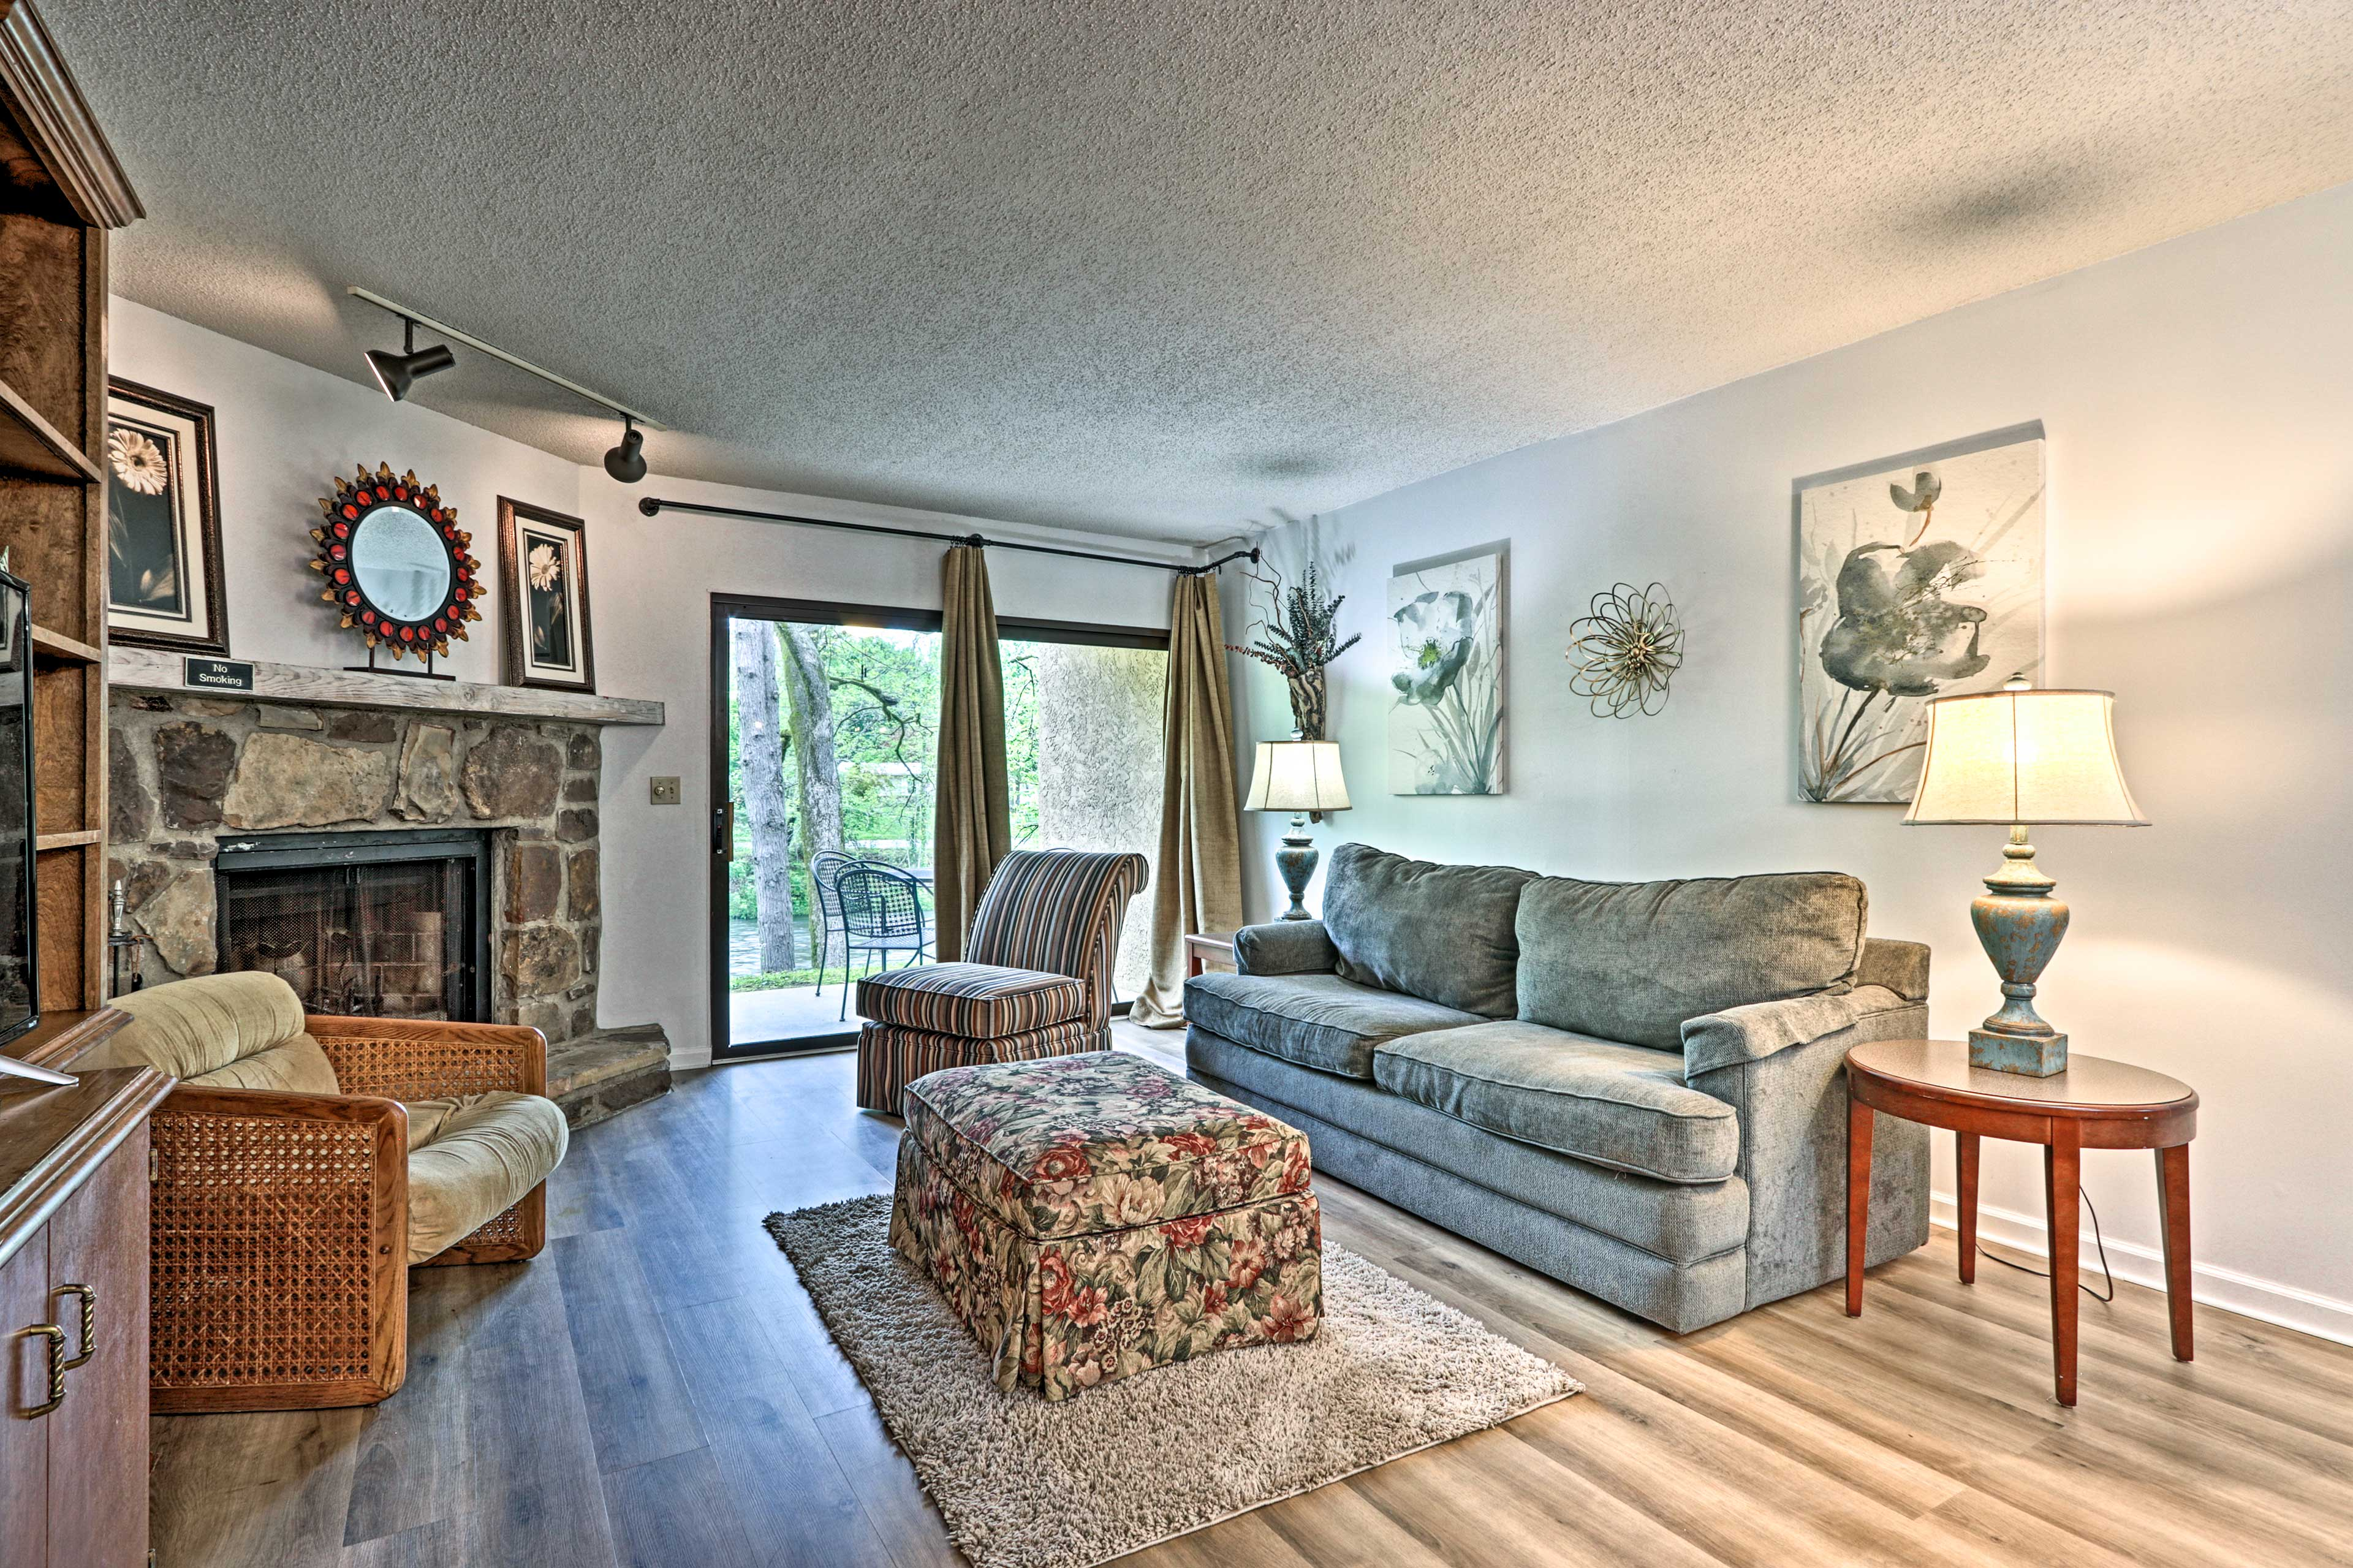 Townsend Vacation Rental Condo   2BR   2BA   1,200 Sq Ft   Step-Free Access